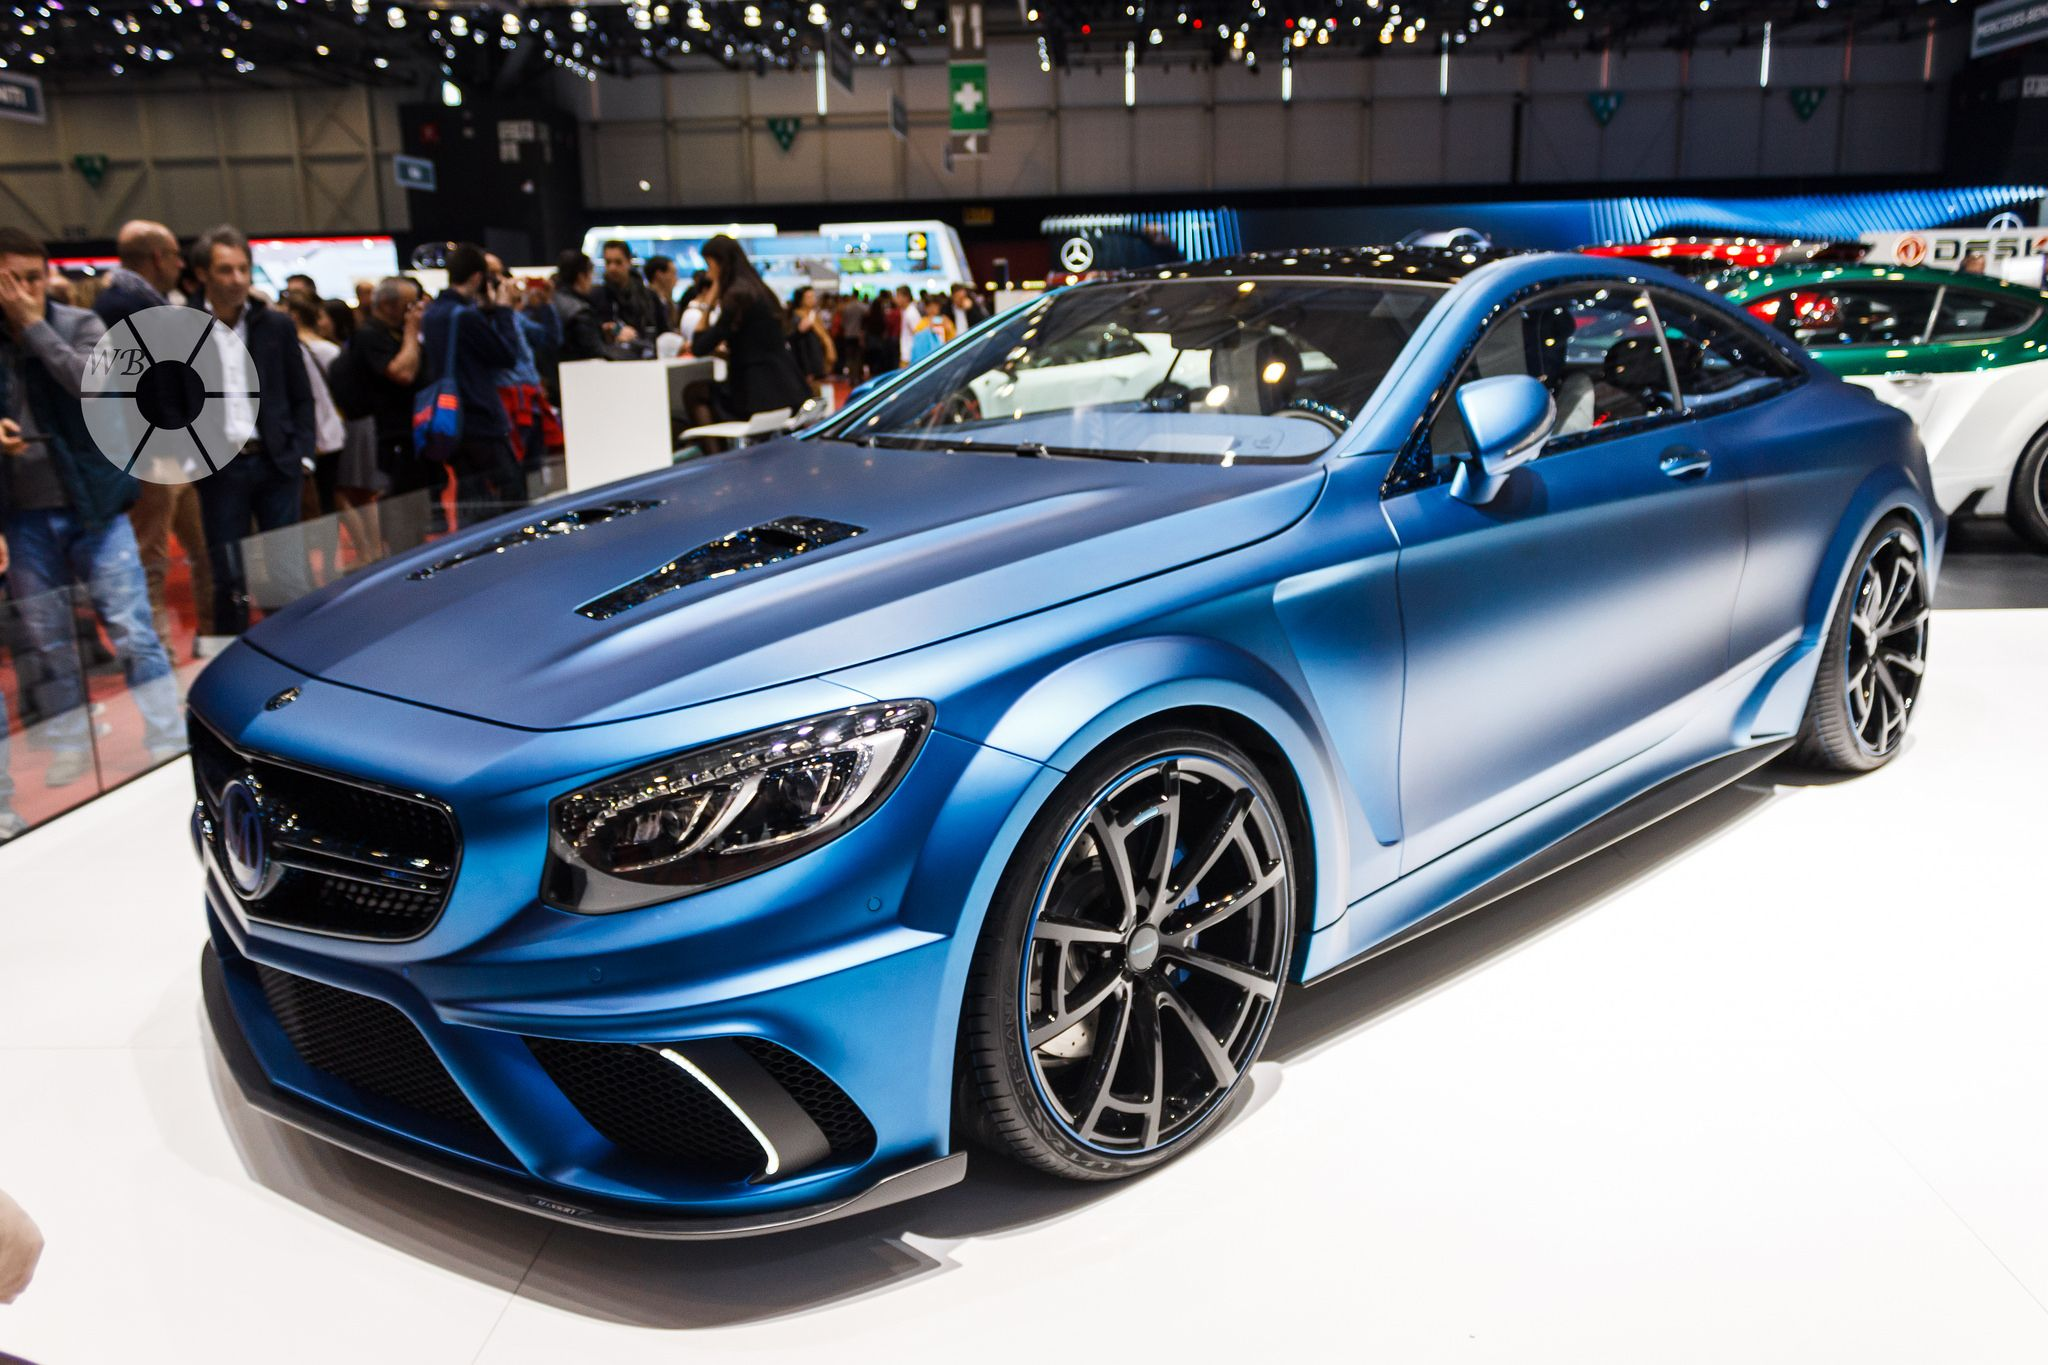 Mercedes Benz S63 AMG Coupe Diamond Edition Mansory 2015 G…